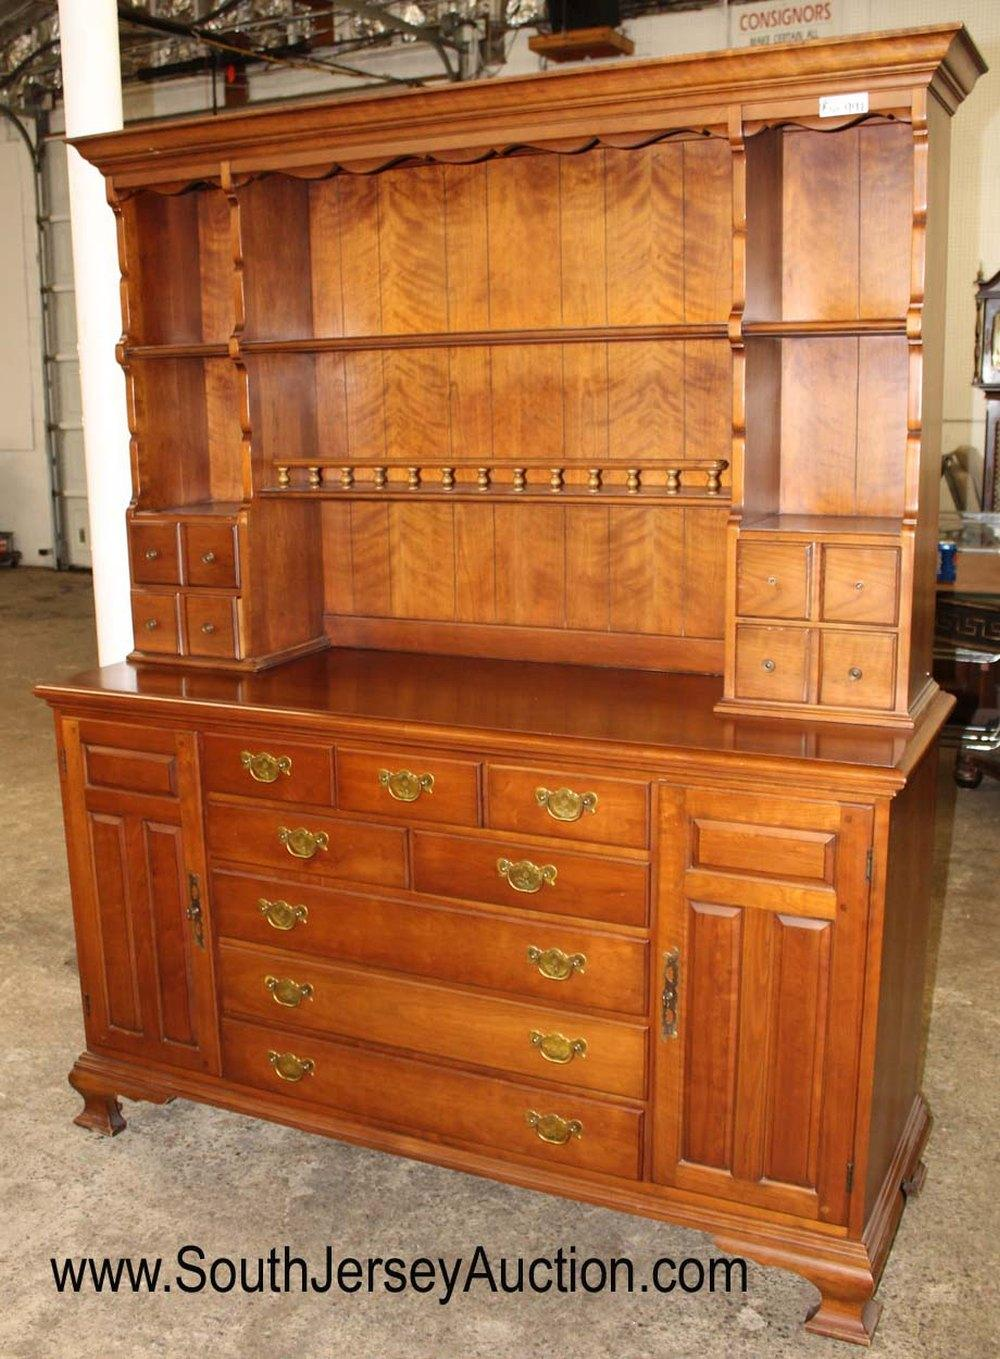 Sold Price Vintage Solid Cherry 2 Piece Hutch By Pennsylvania House Furniture Invalid Date Edt